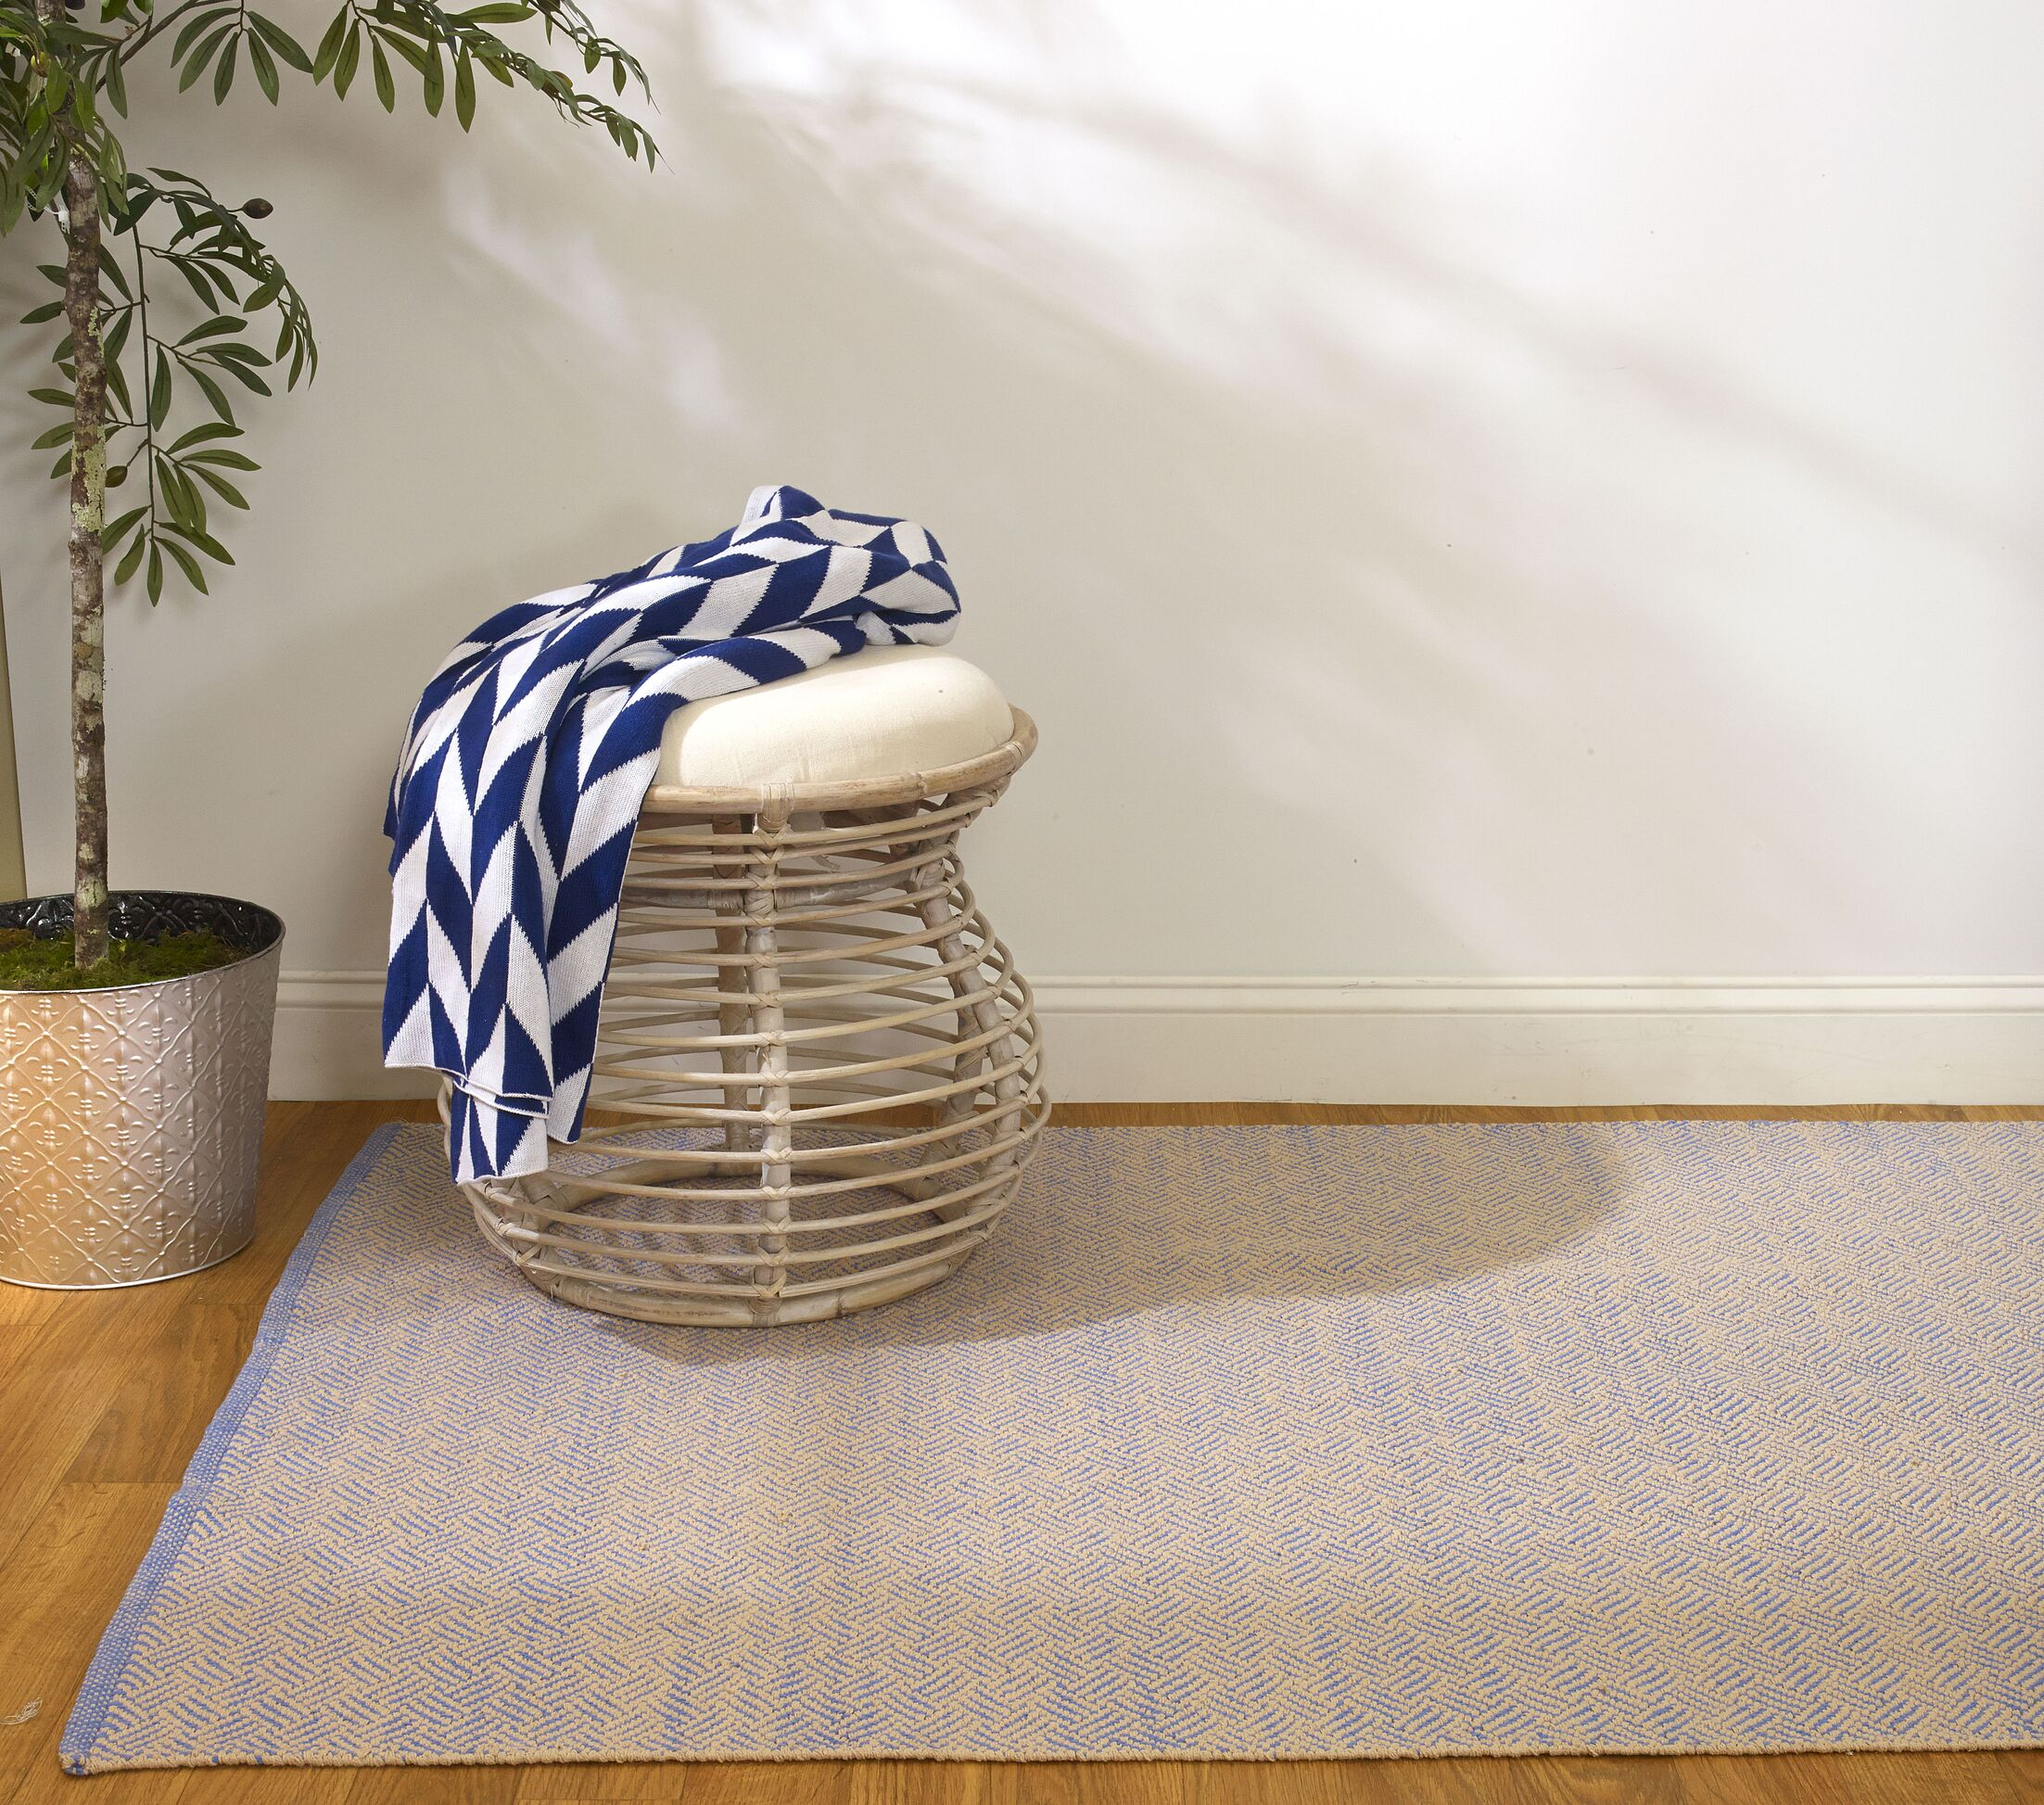 Estate Karma Hand-Woven Blue/Almond Indoor/Outdoor Area Rug Rug Size: Rectangle 6' x 9'